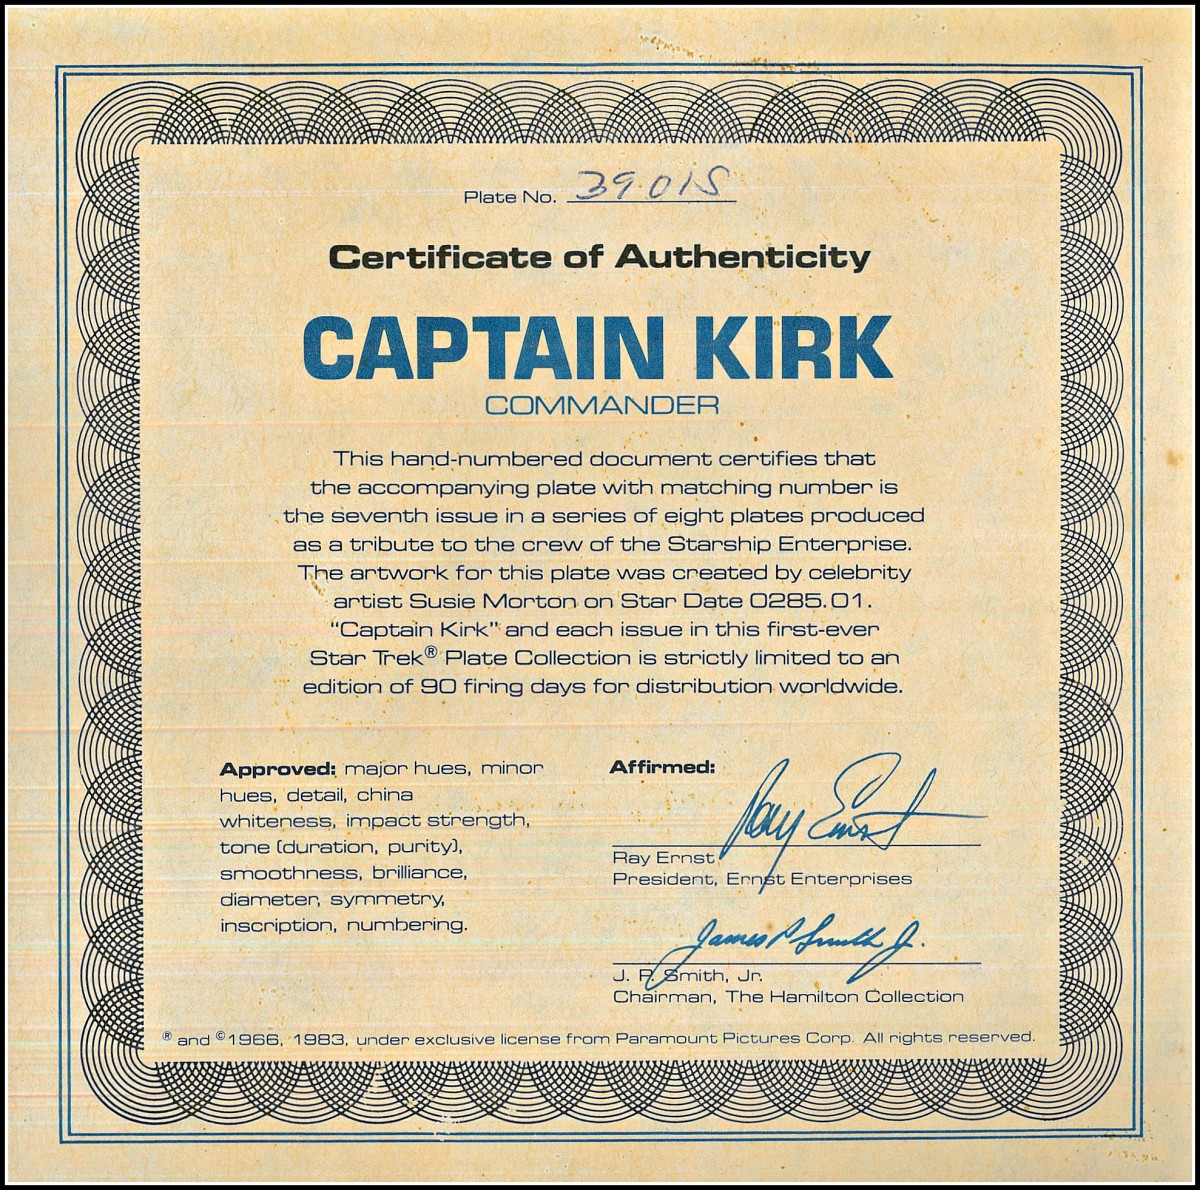 This hand-numbered document certifies that the accompanying plate with matching number is the seventh issue in a series of eight plates produced as a tribute to the crew of the Starship Enterprise.